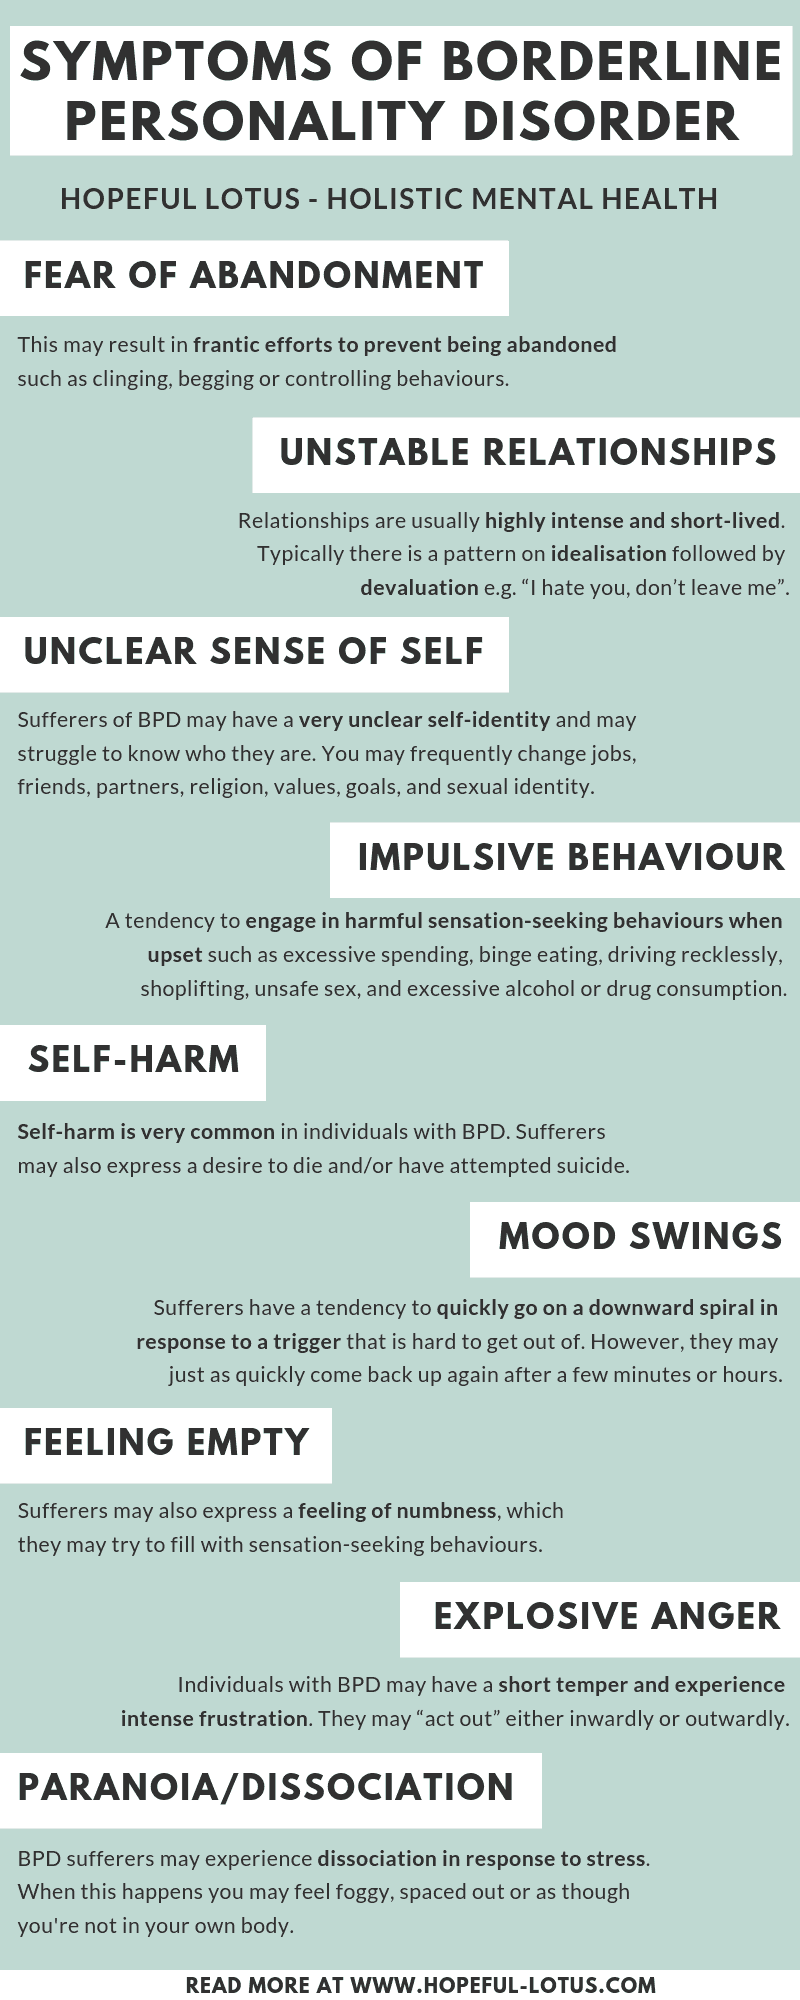 An infographic on the core symptoms of borderline personality disorder (BPD), otherwise known as emotionally unstable personality disorder (EUPD). Fear of abandonment, unstable relationships, unclear self-identity, impulsive behaviour, self-harm, mood swings, feeling empty, explosive anger and paranoia/dissociation.